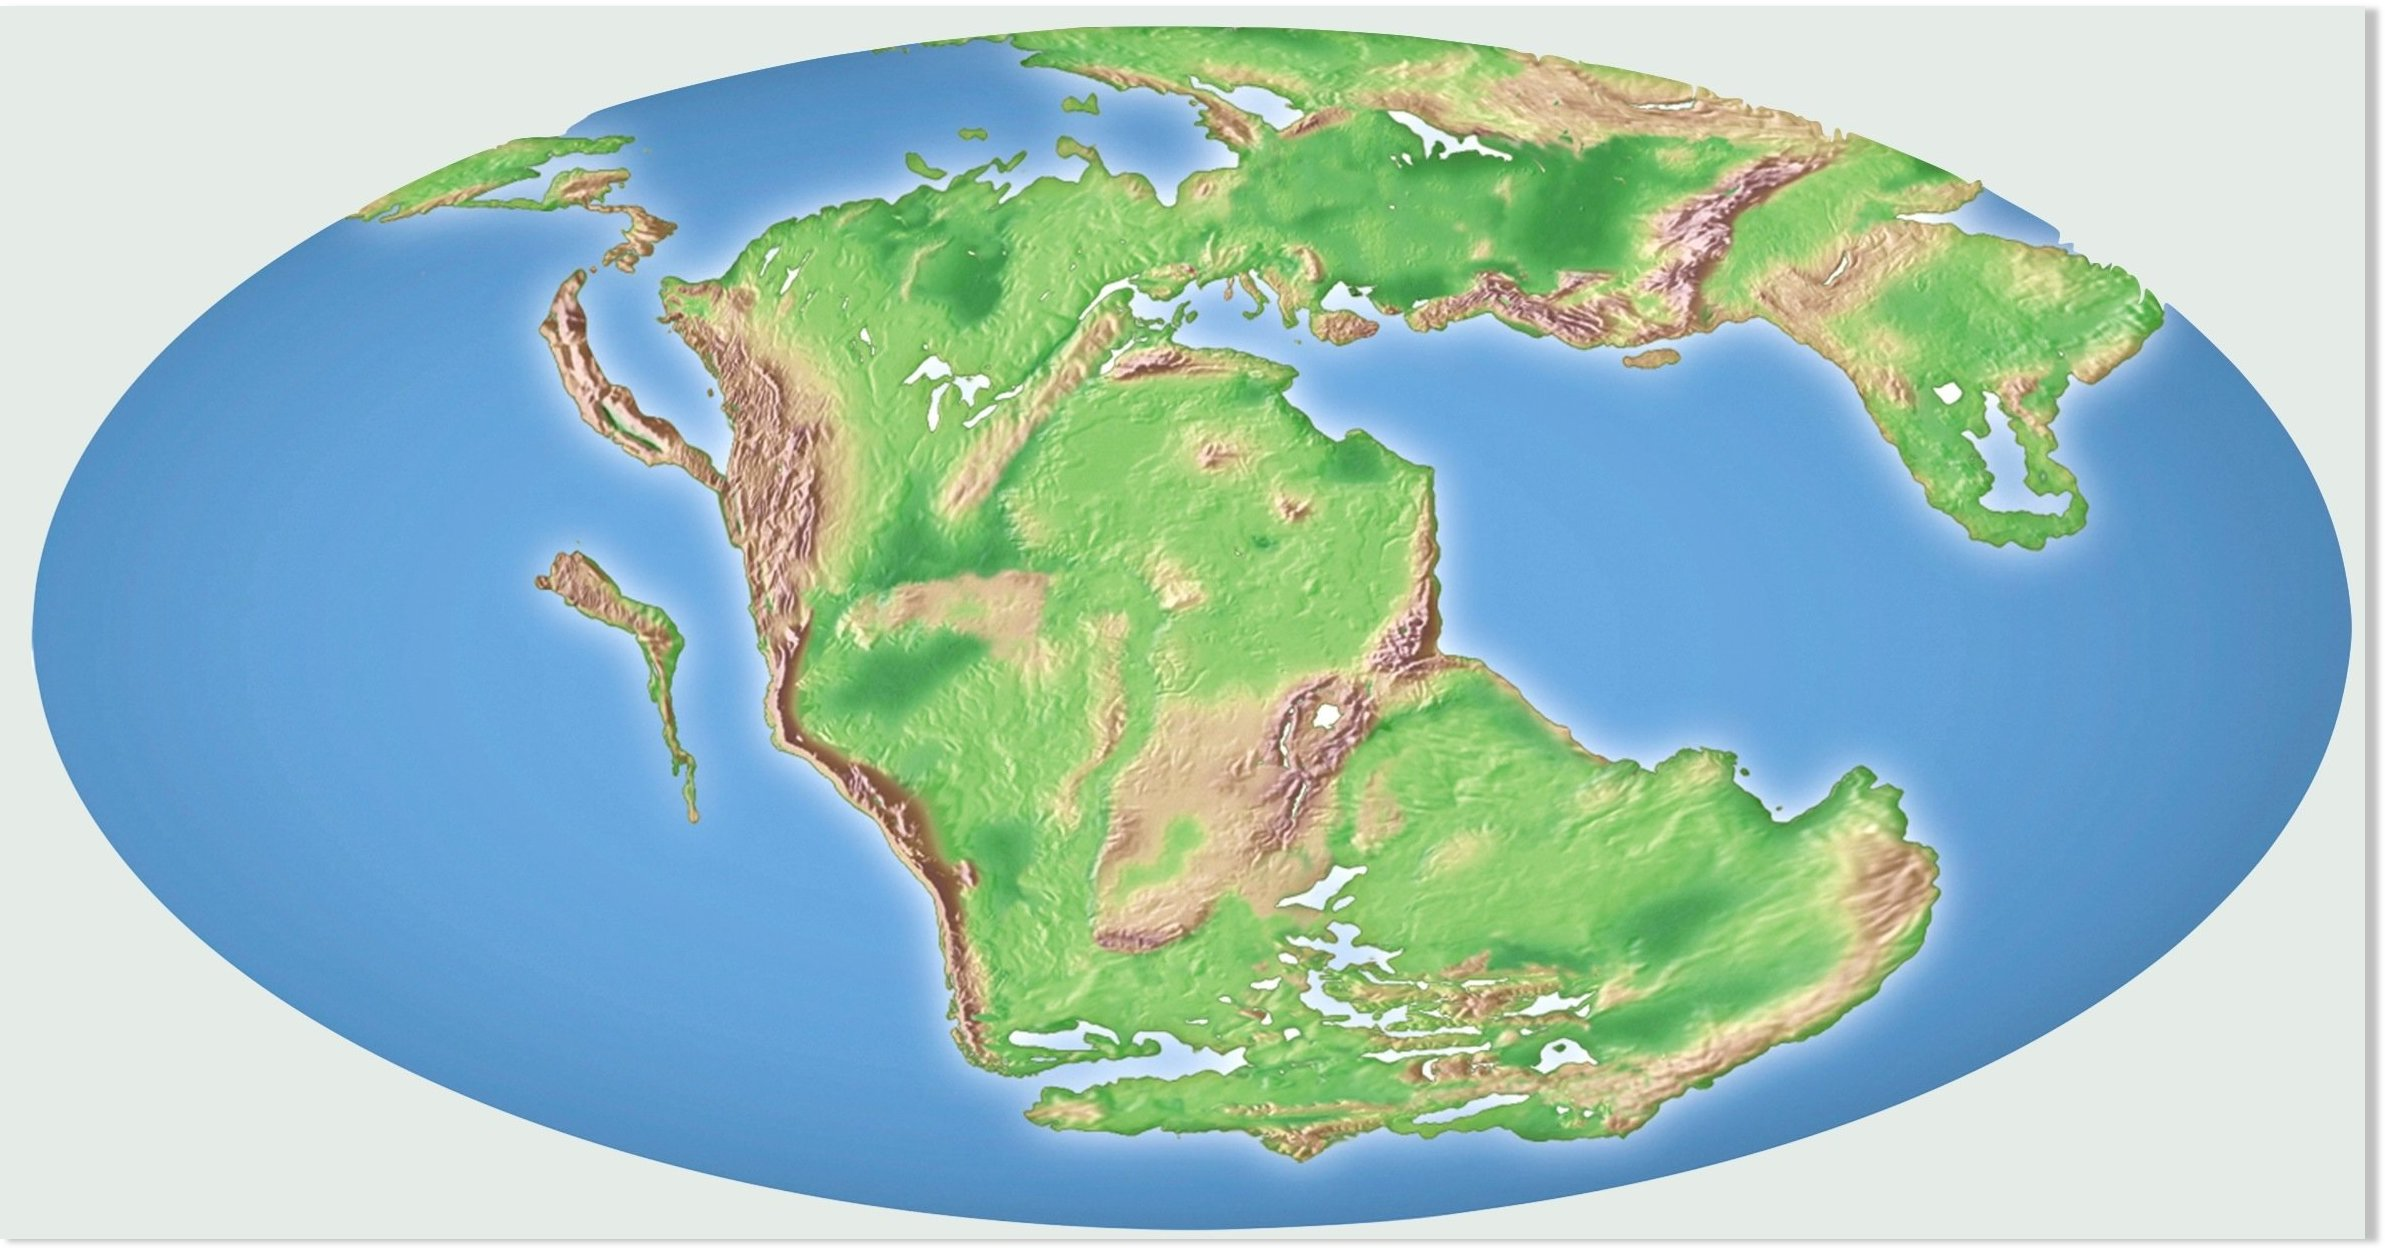 New modeling suggests earths supercontinents tore apart quickly new modeling suggests earths supercontinents tore apart quickly after millions of years of strained separation science technology sott gumiabroncs Images